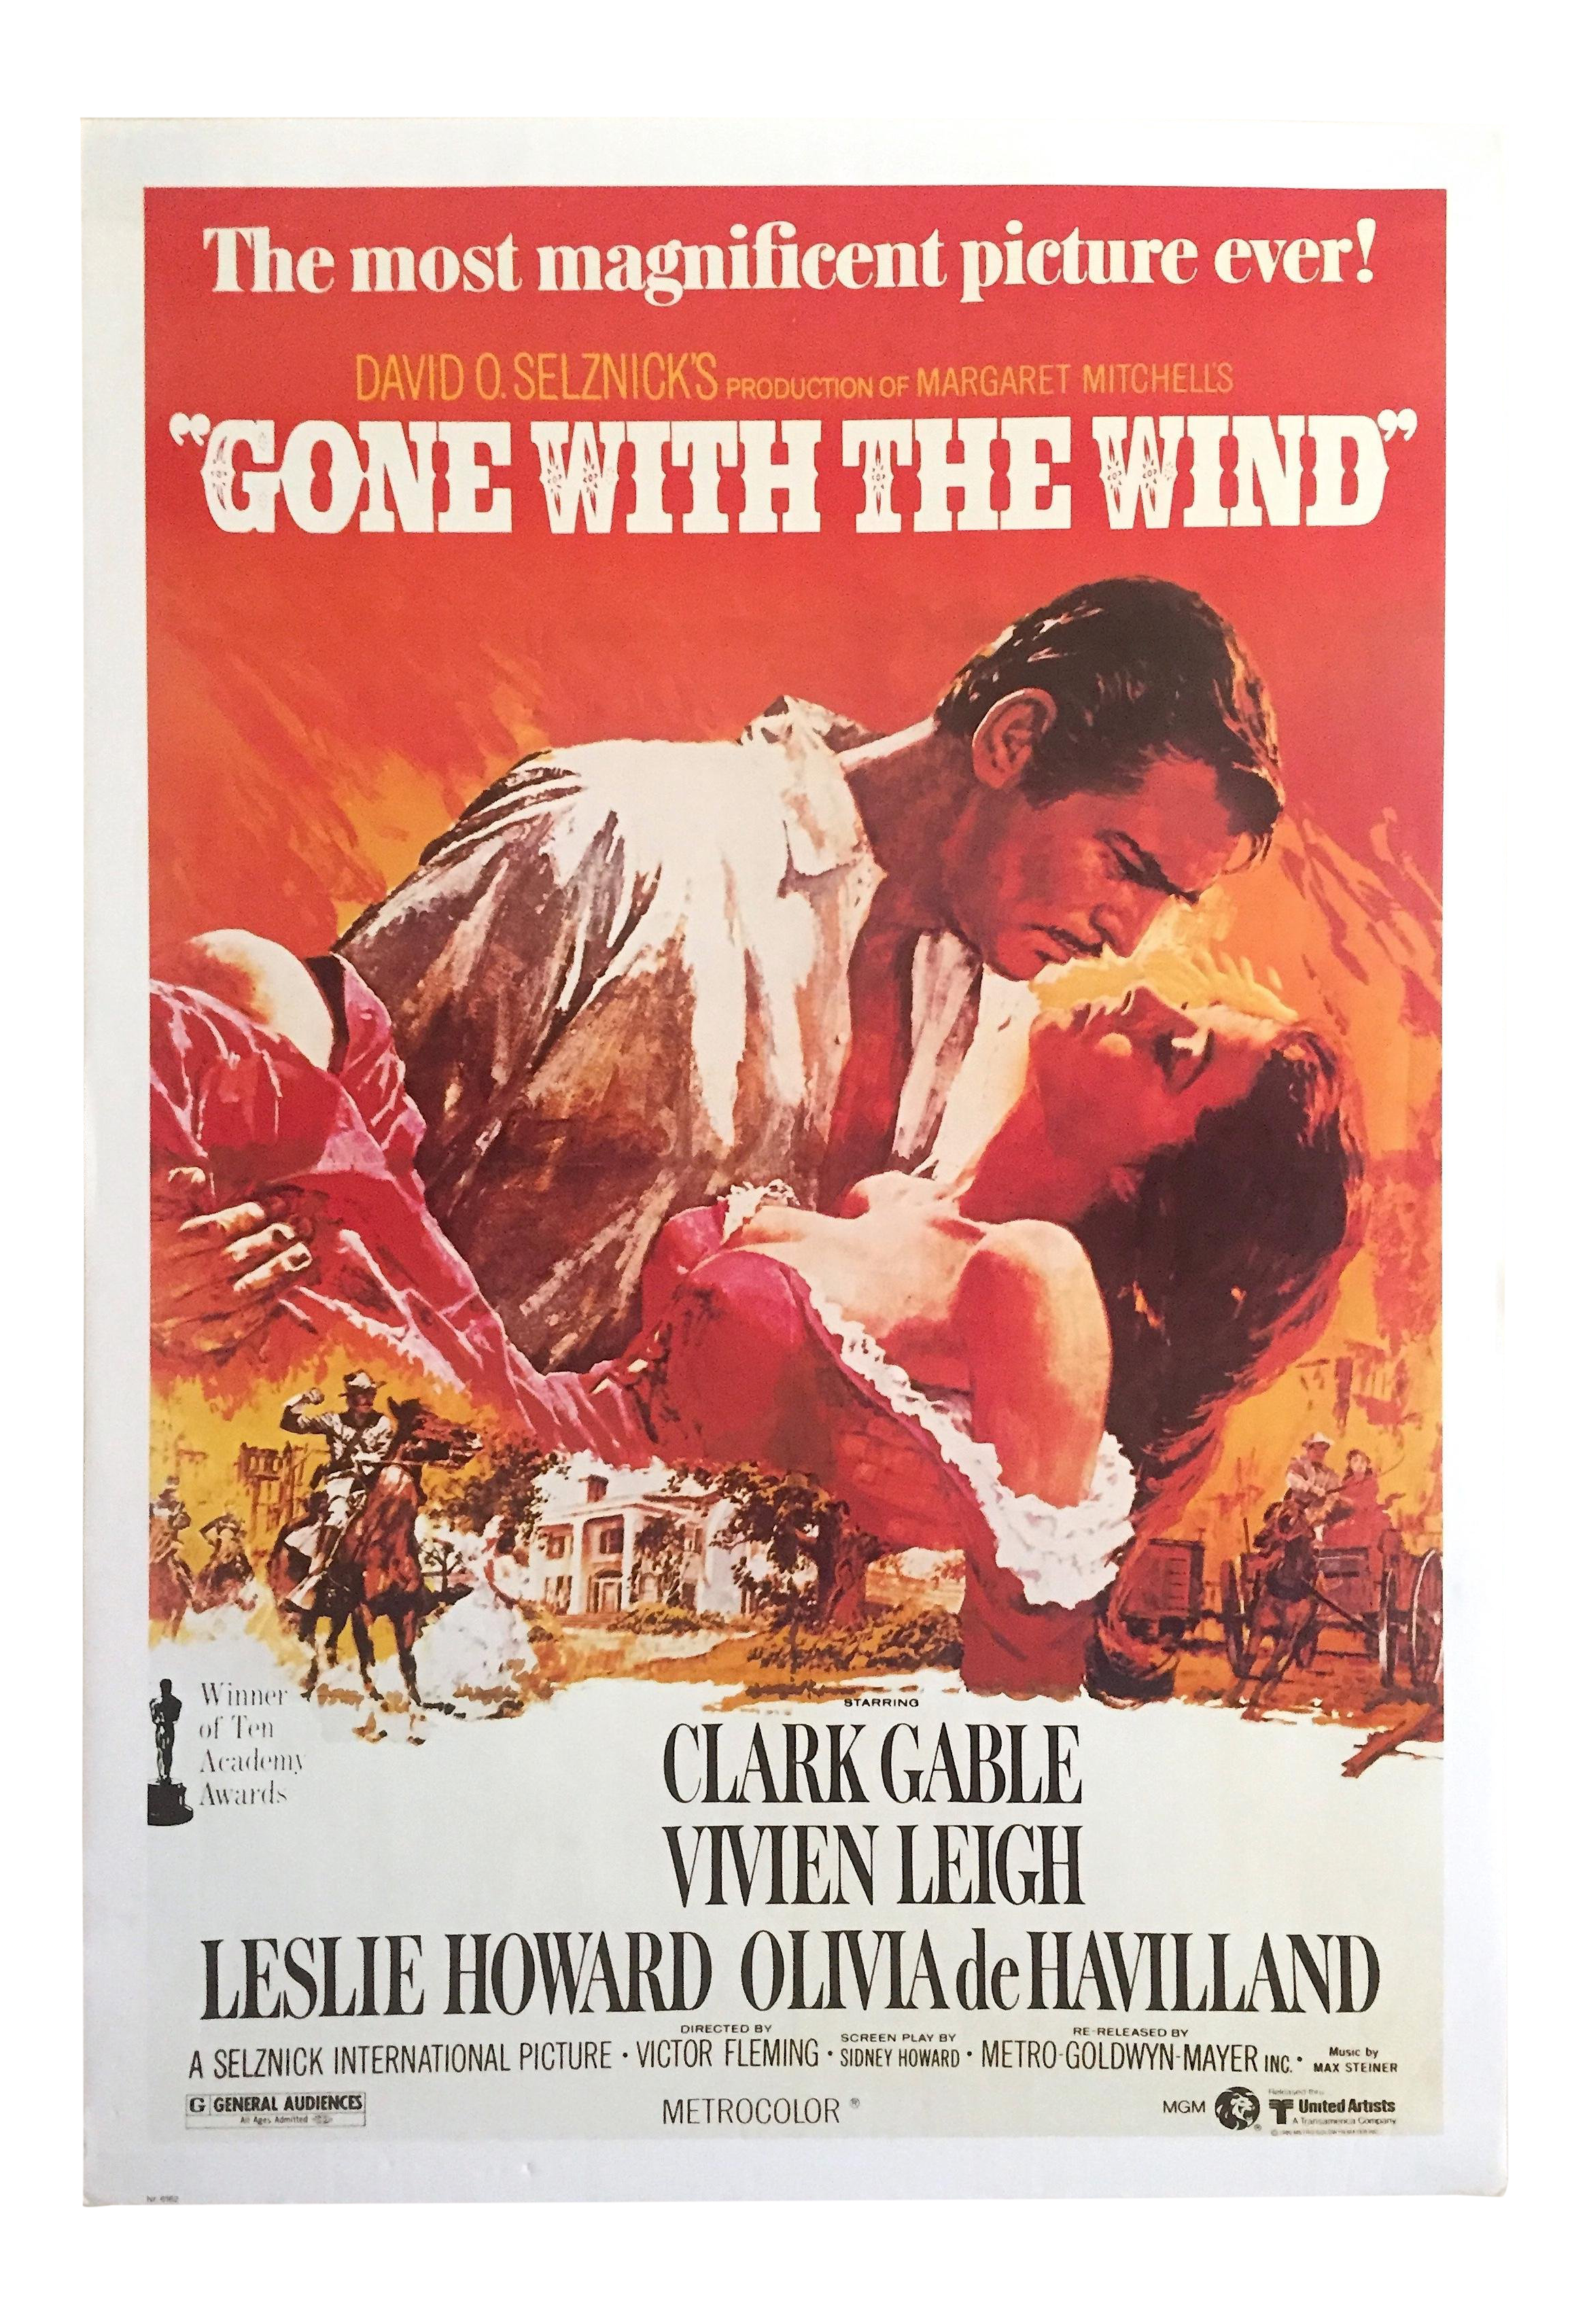 Rare Vintage 1980 Collector S Iconic Movie Poster Gone With The Wind 1939 Iconic Movie Posters Classic Films Posters Original Movie Posters